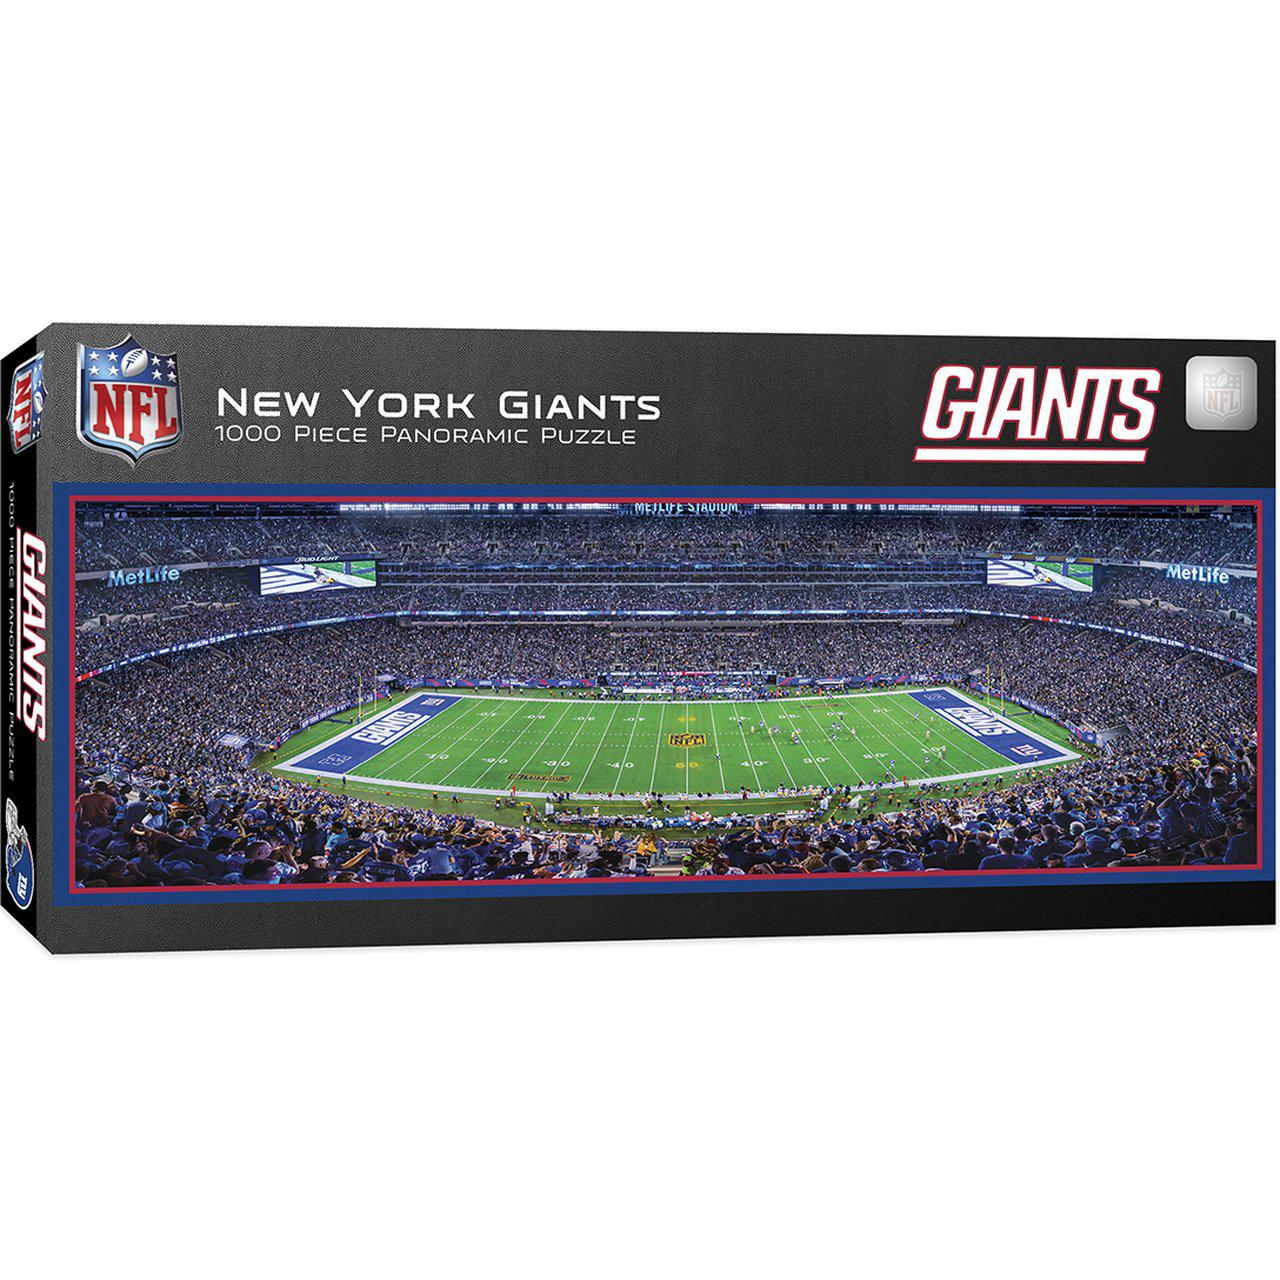 New York Giants 1,000 Piece Panoramic Puzzle-Puzzle-MasterPieces Puzzle Company-Top Notch Gift Shop